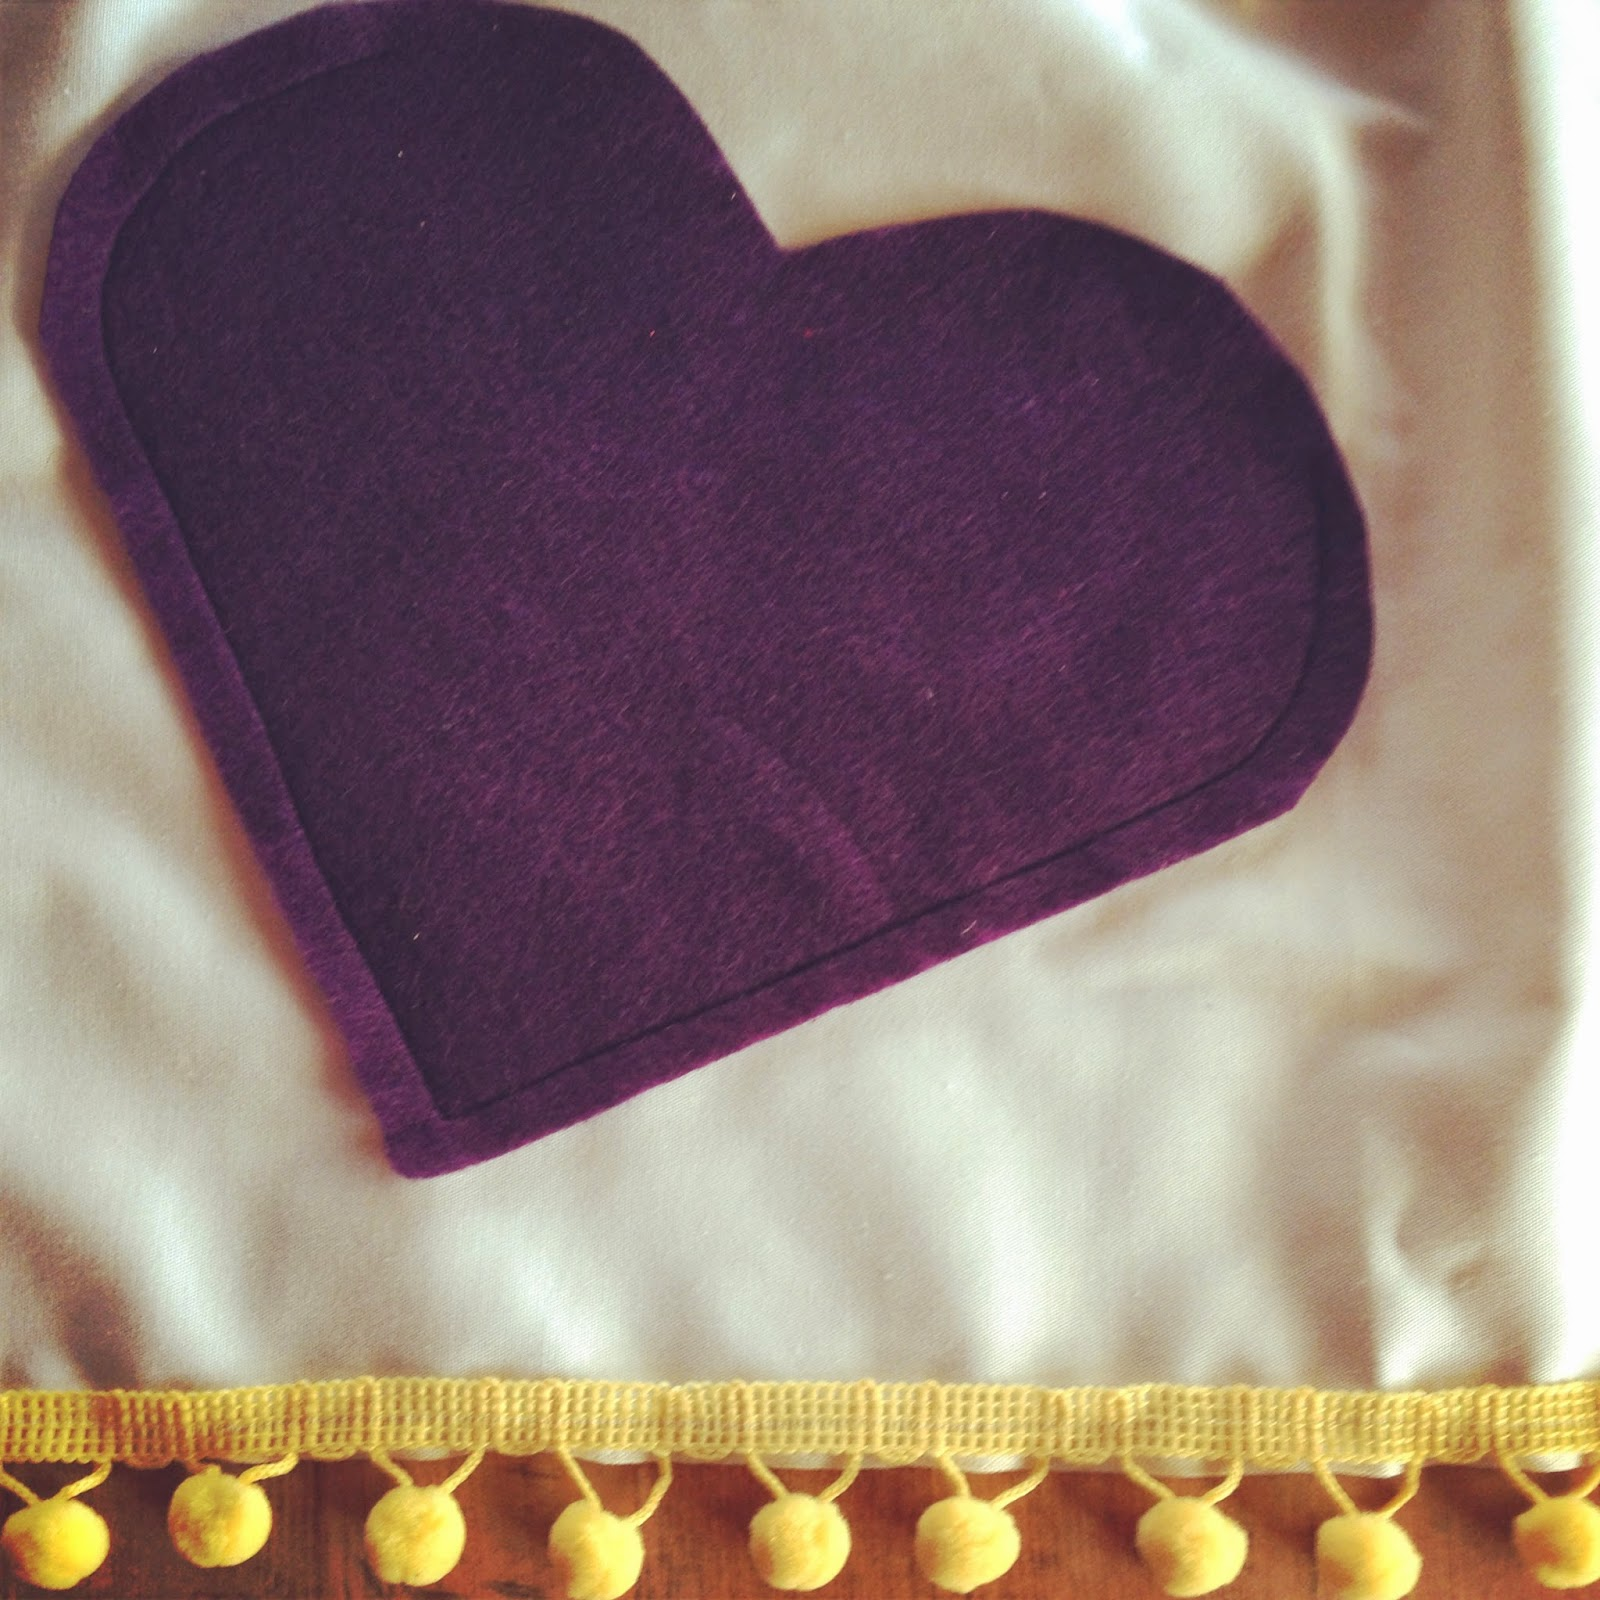 kids apron DIY pom pom heart pocket